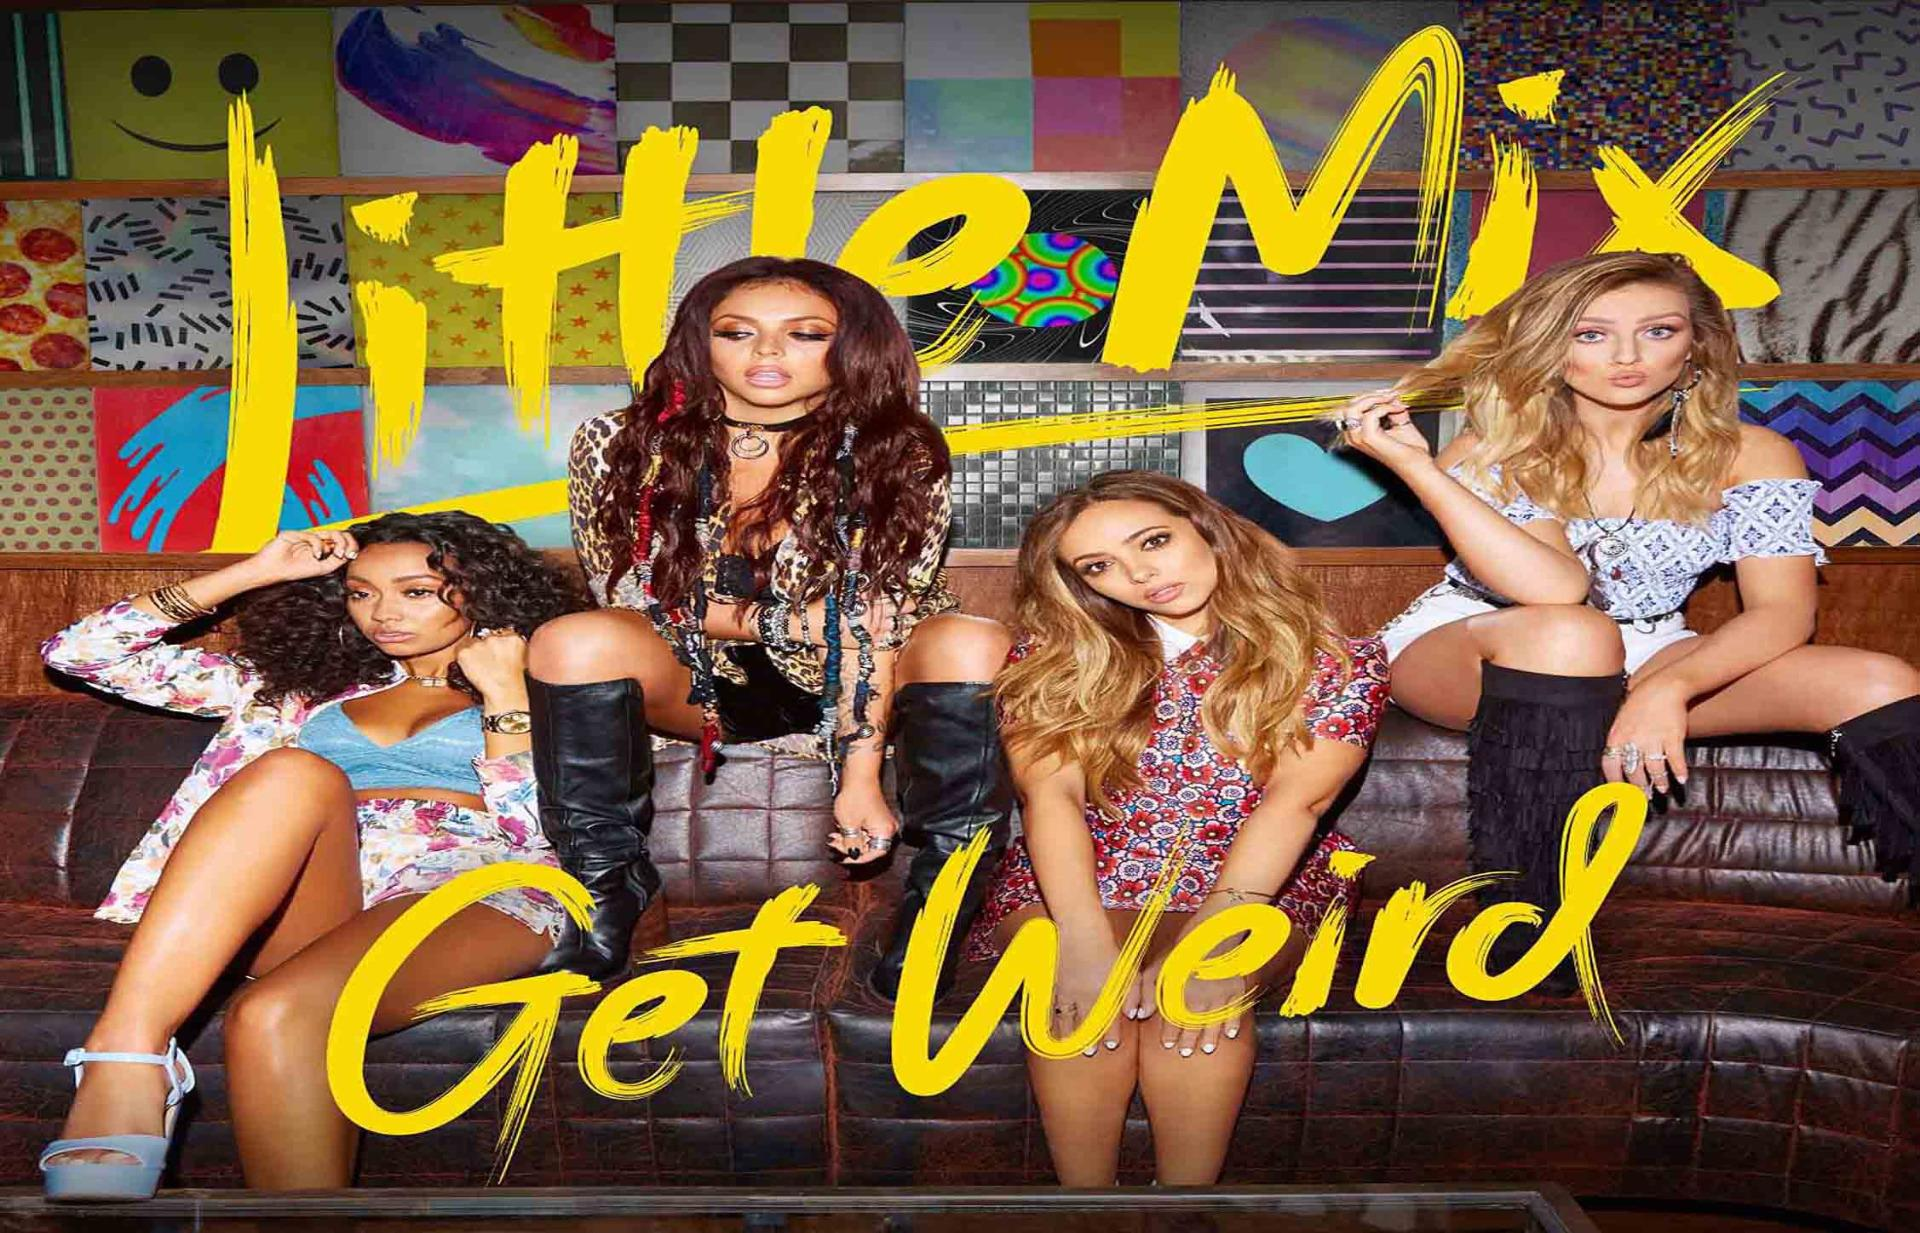 little mix get weird deluxe album cover poster sizes a4